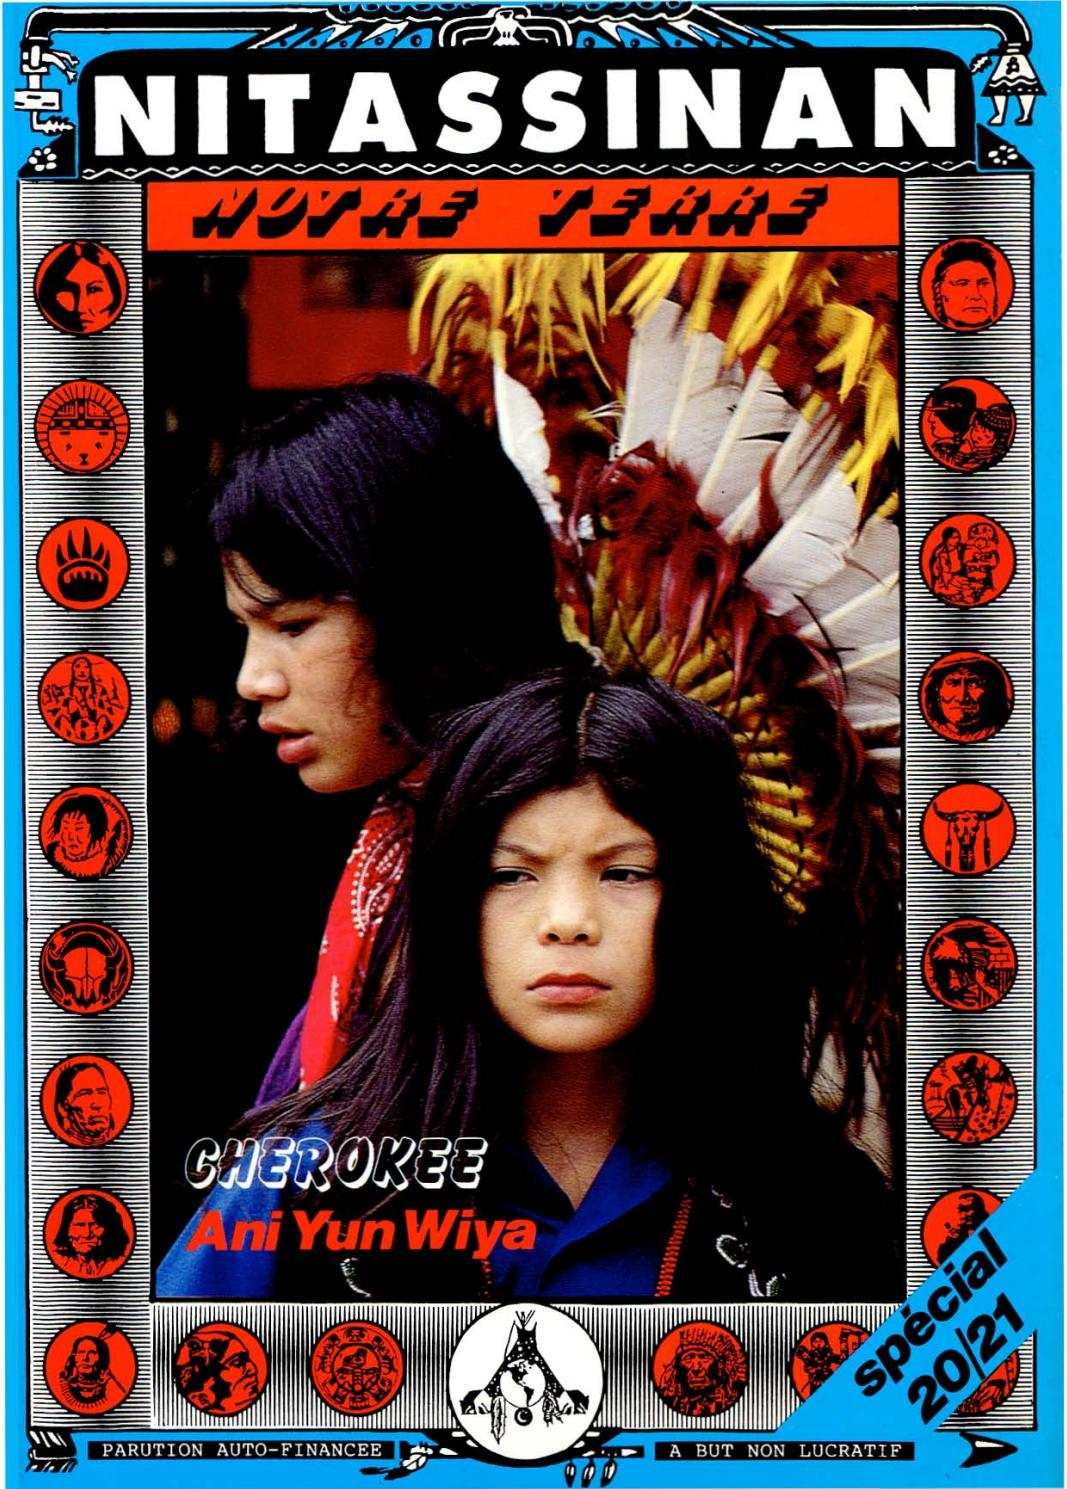 Choctaw indien datant